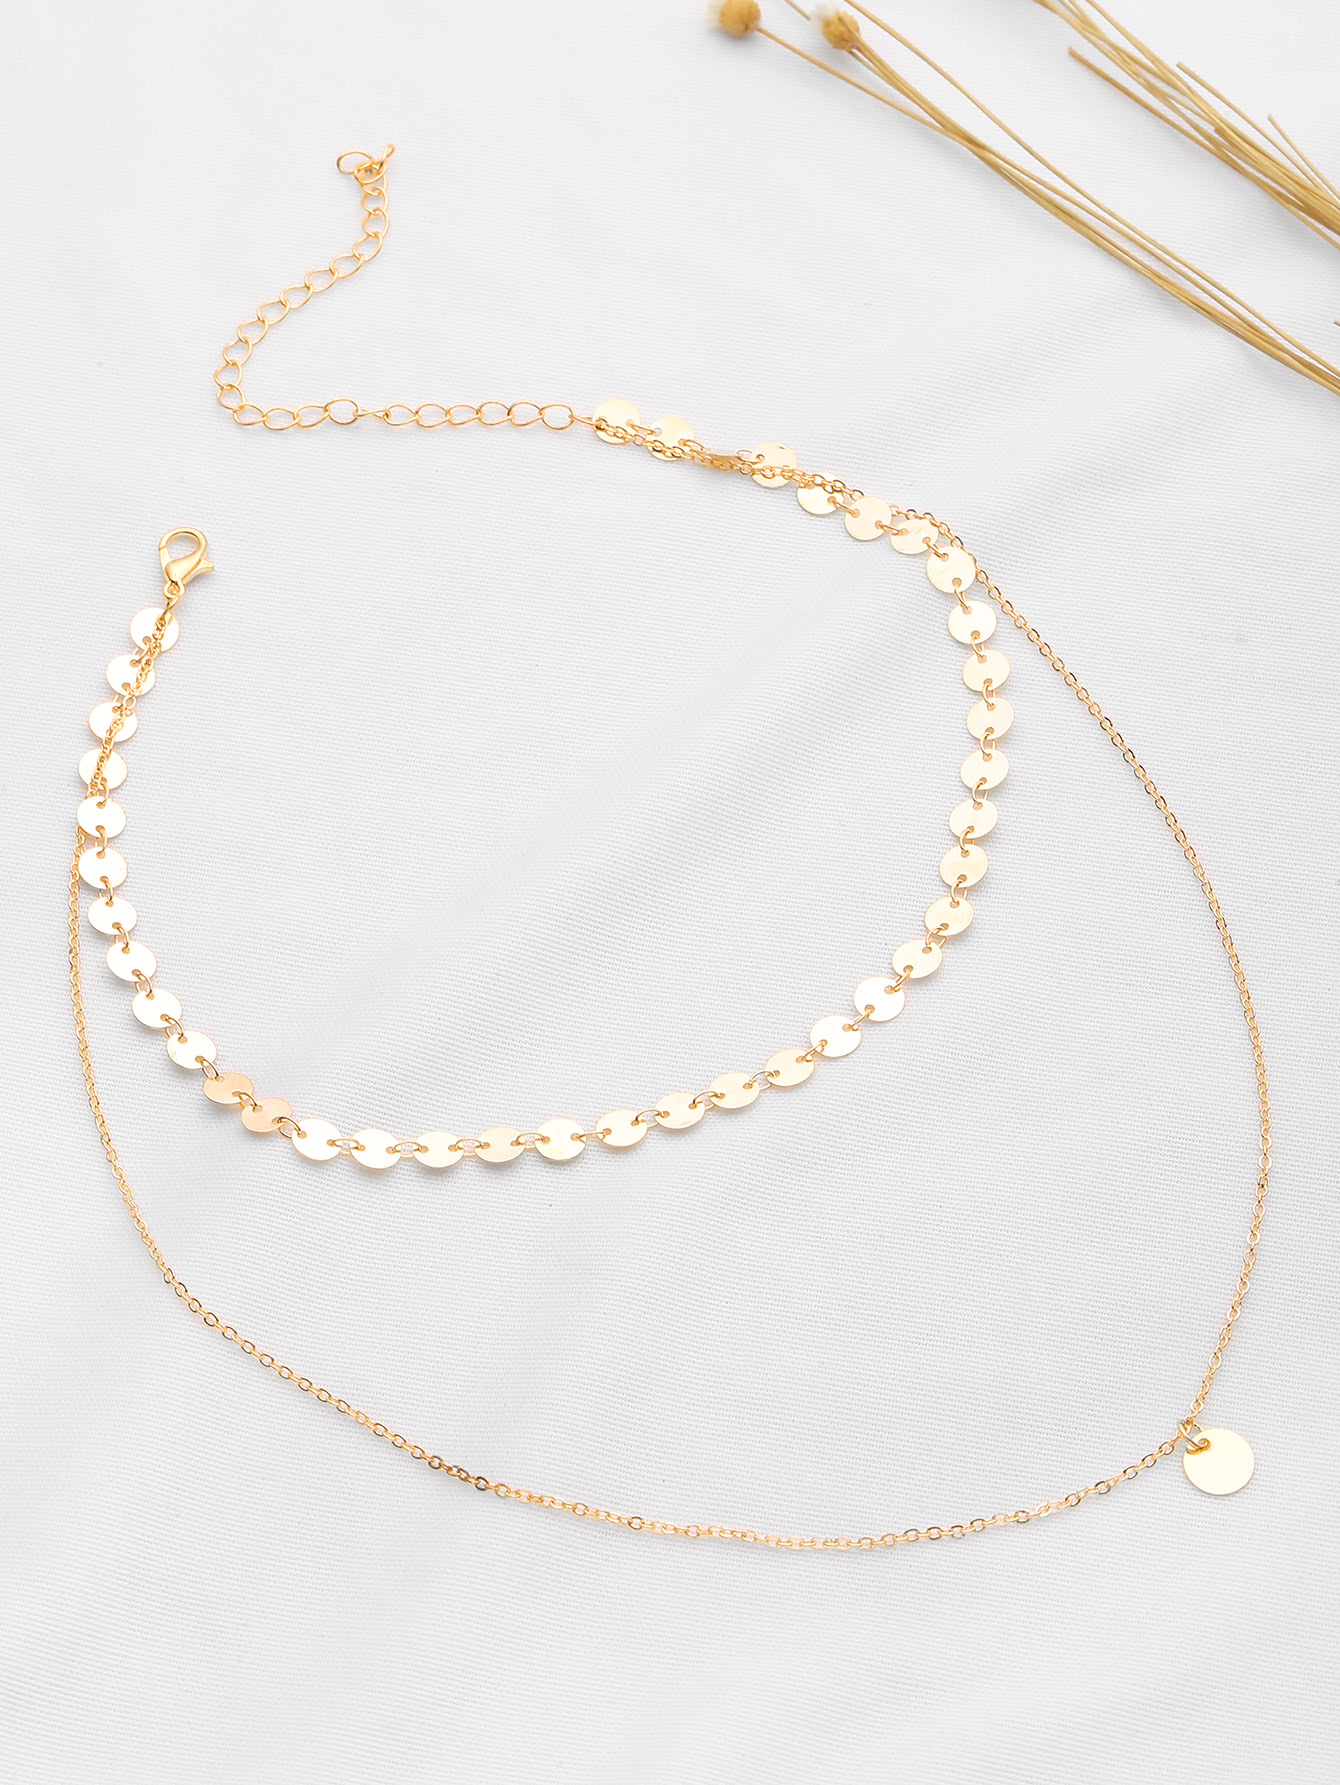 gold necklace with small circle details